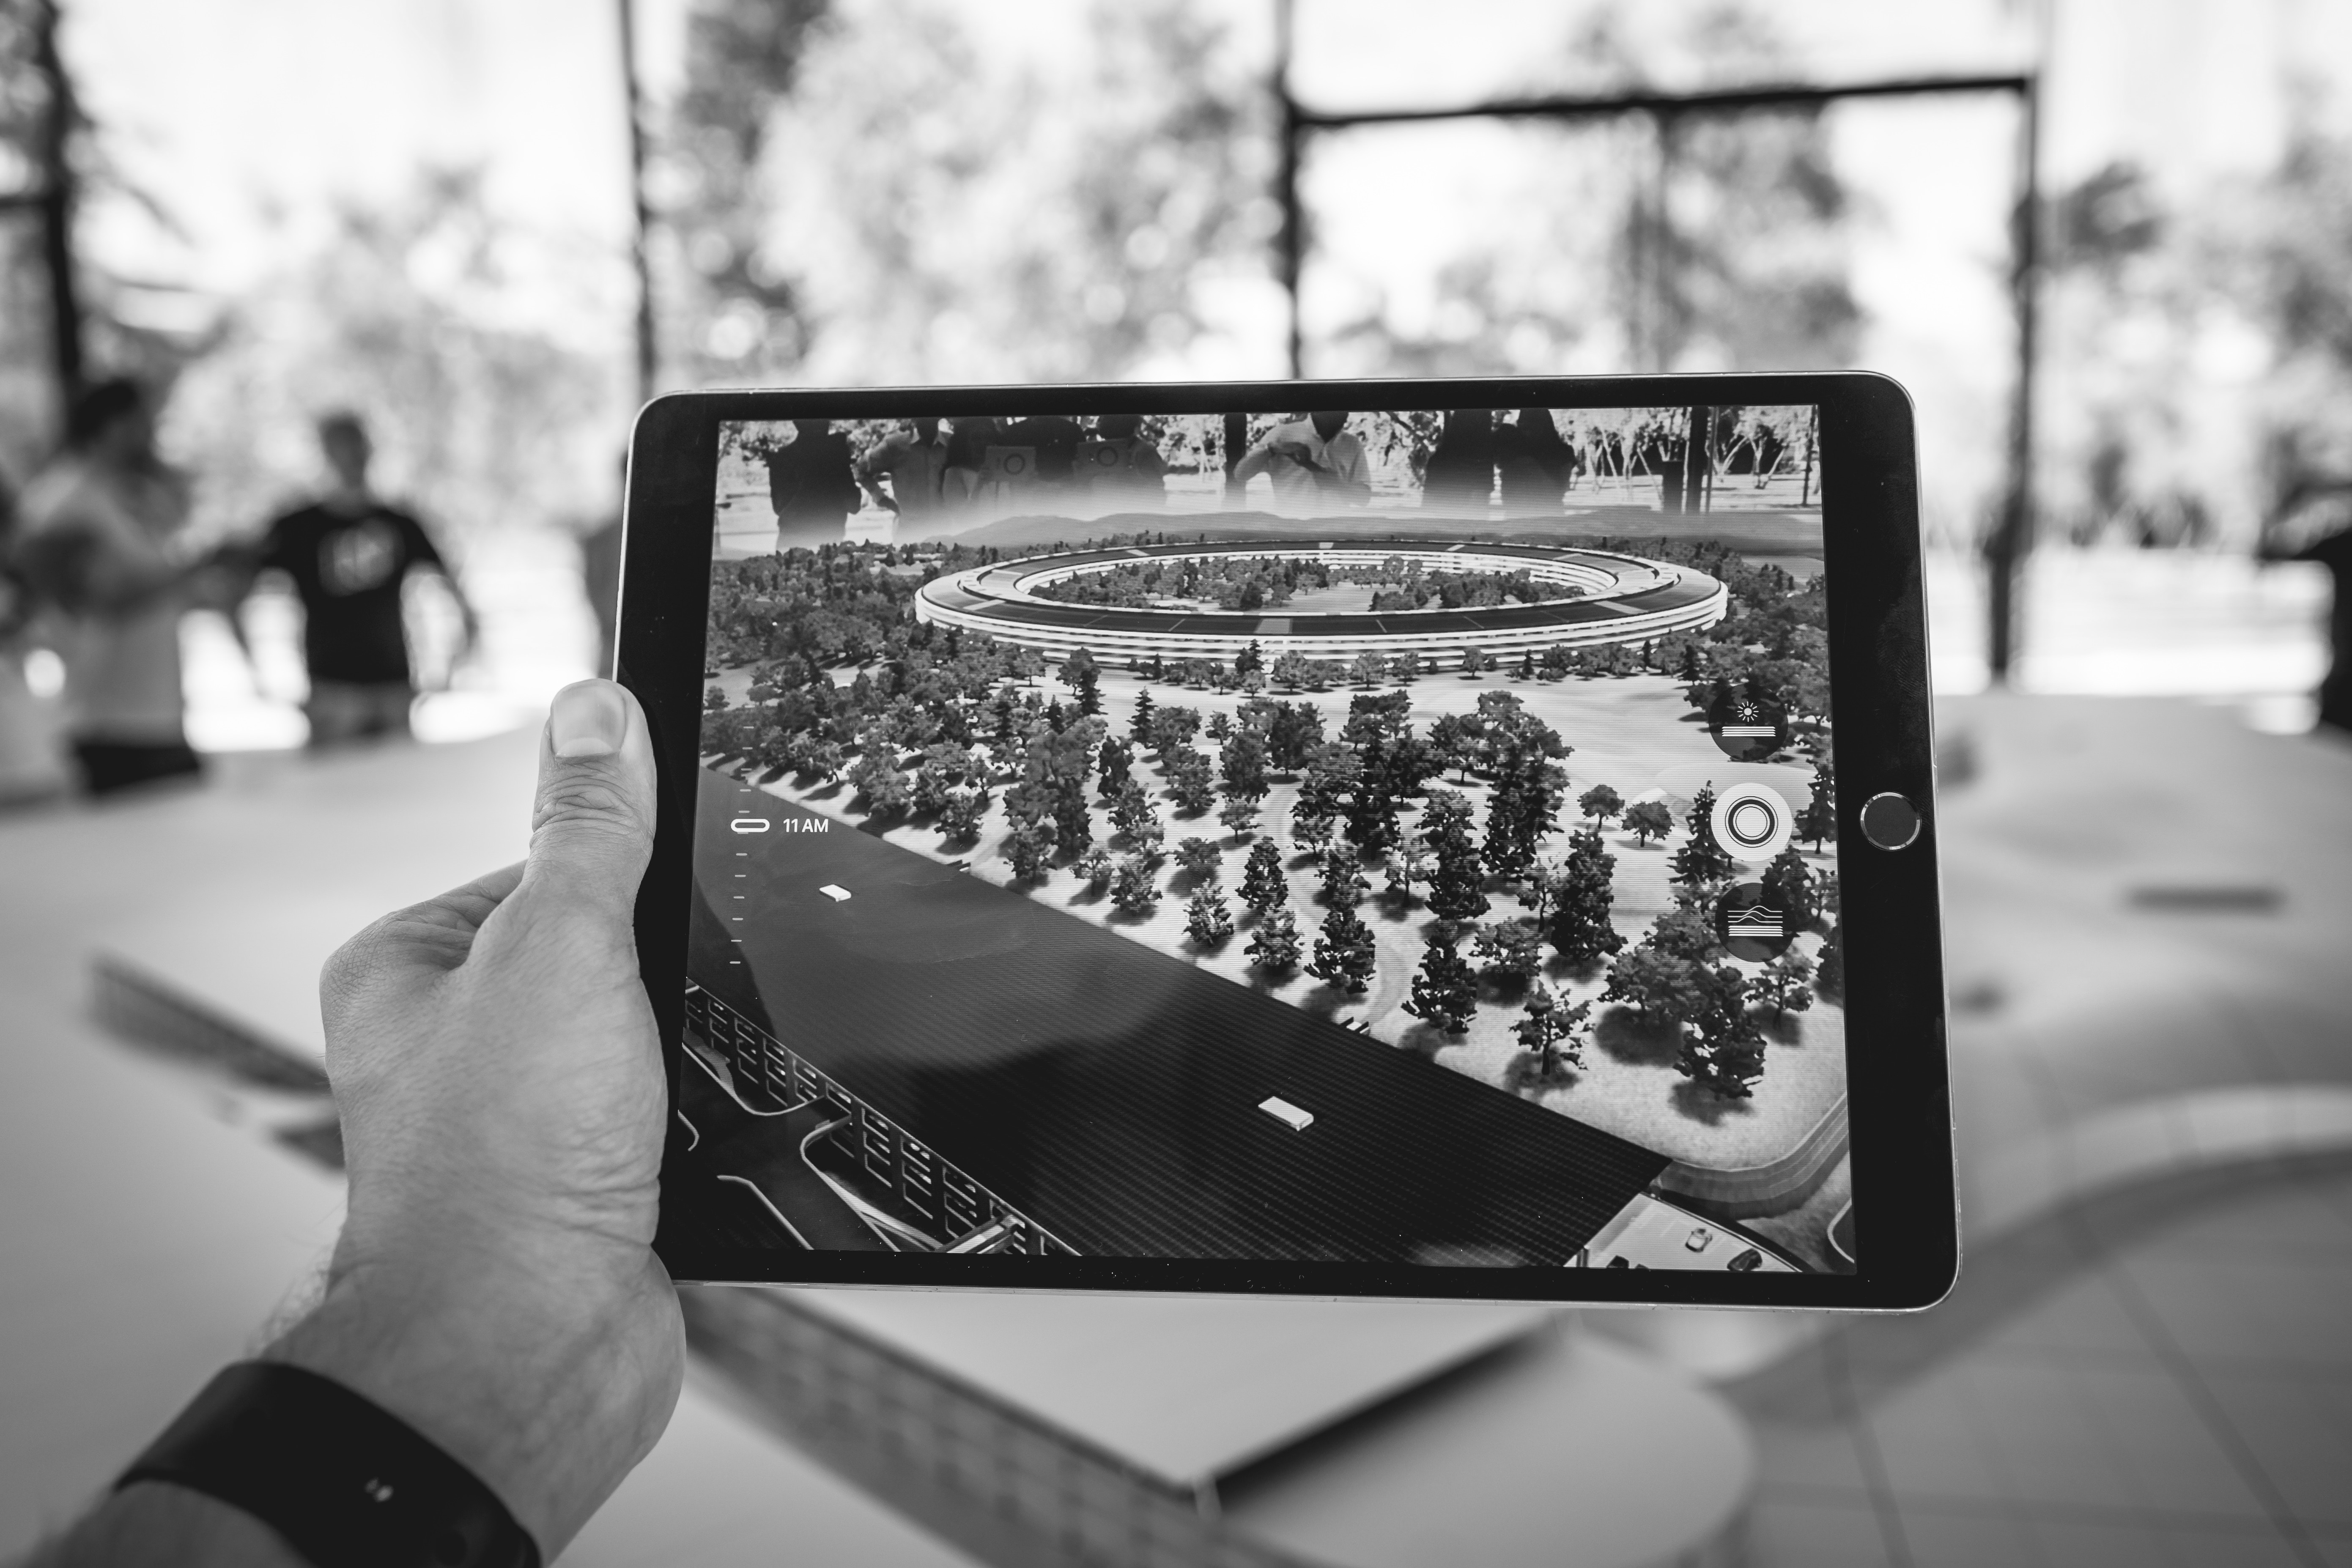 Person using Augmented Reality AR, holding tablet